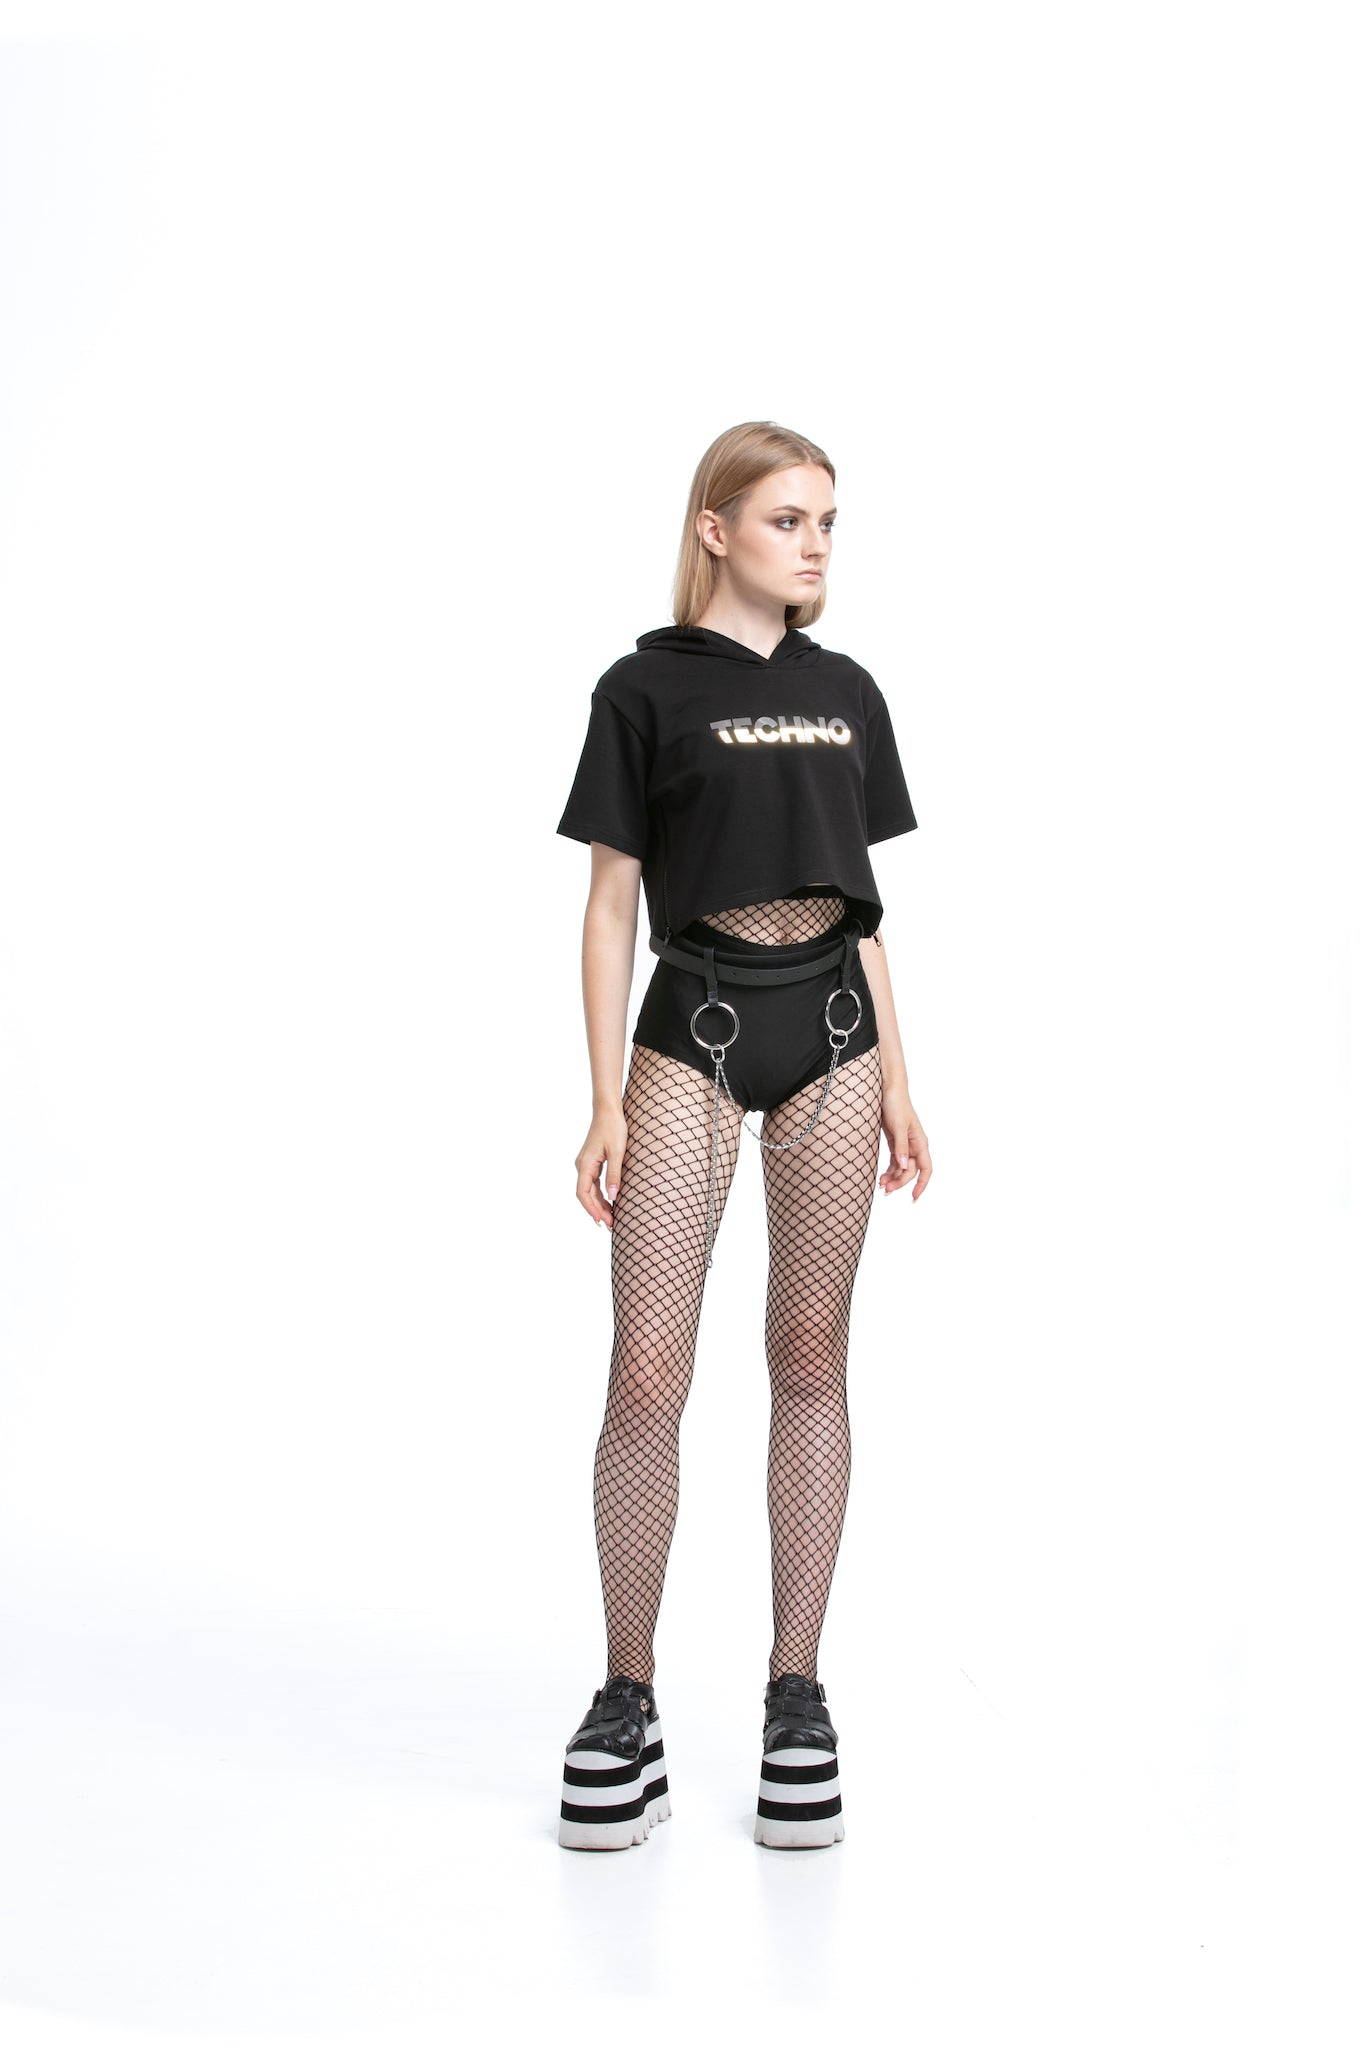 Reflective Techno - Cropped Tops with side zips